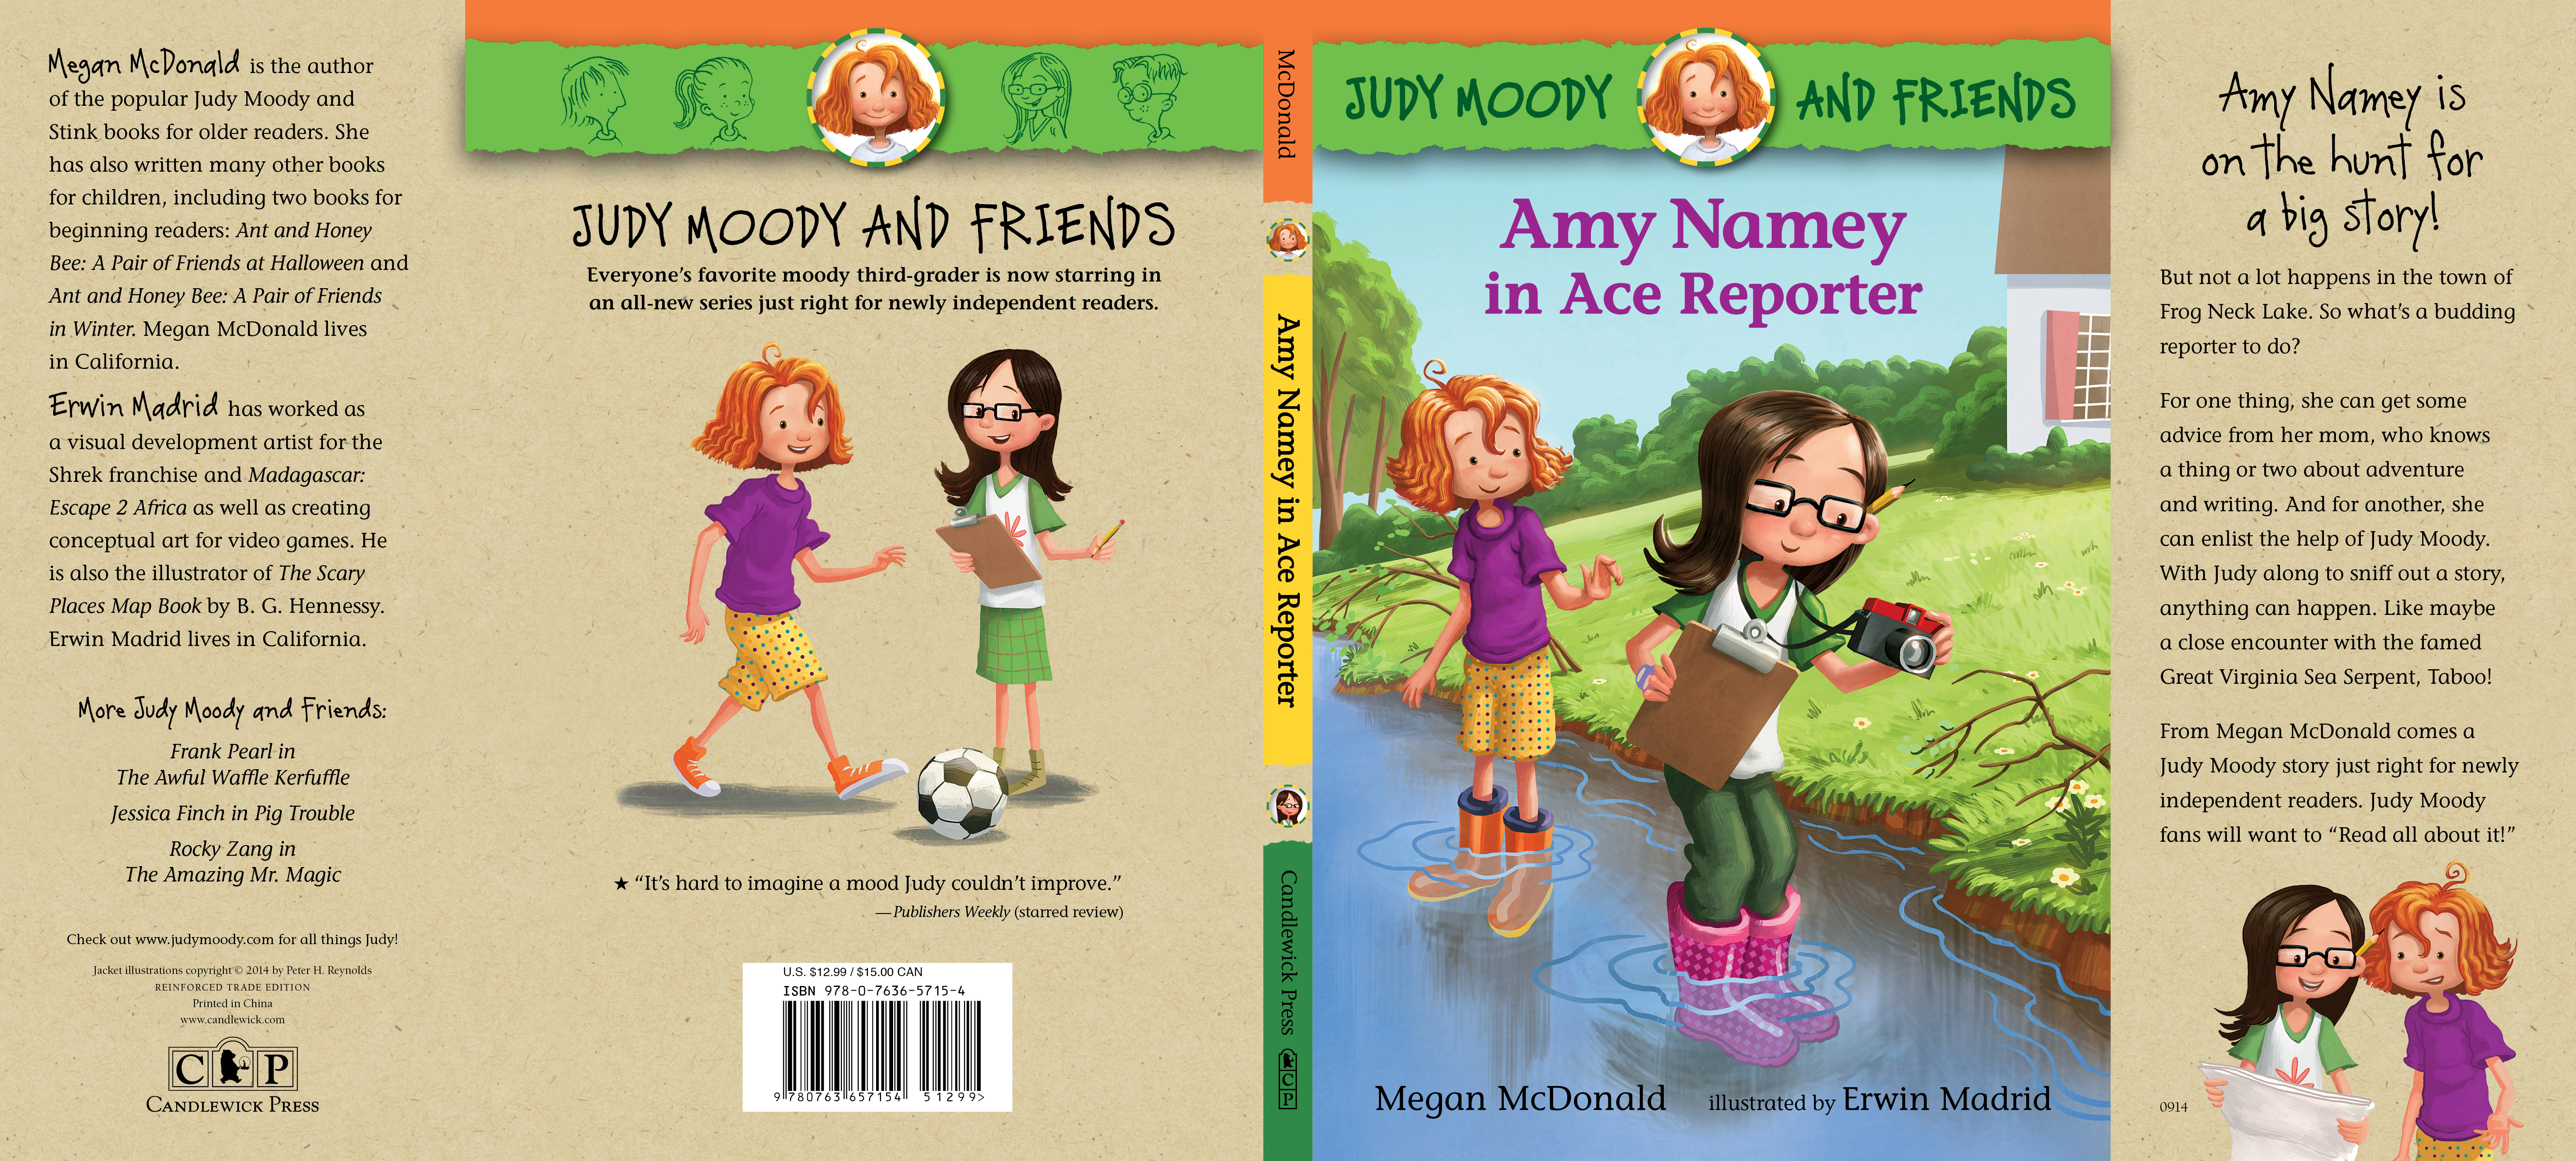 Full jacket for AMY NAMEY IN ACE REPORTER